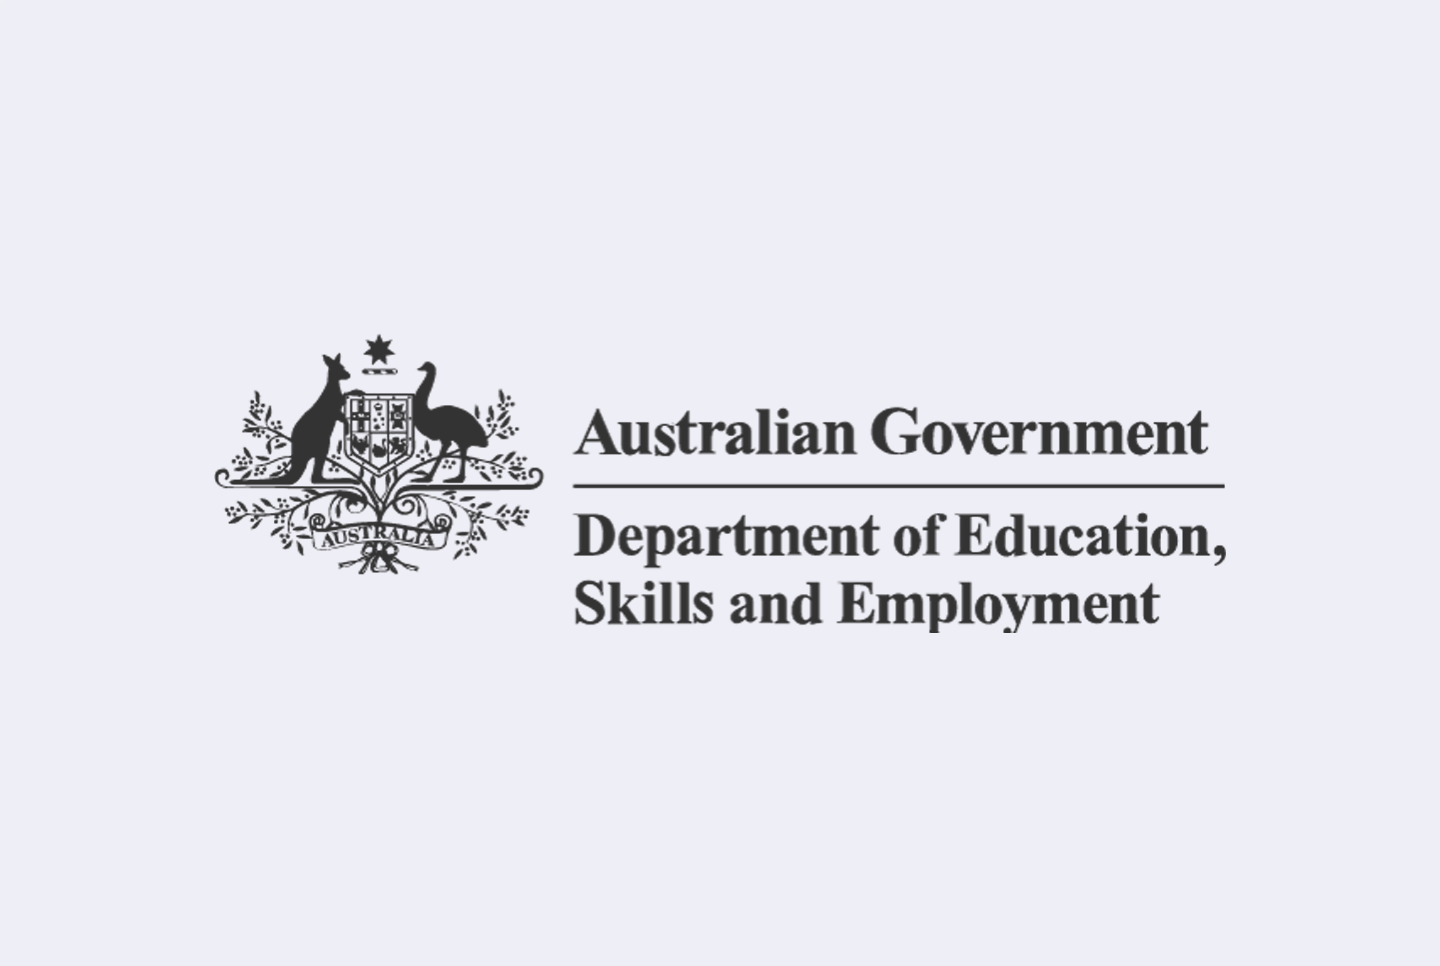 Contact The Department of Education, Skills and Employment